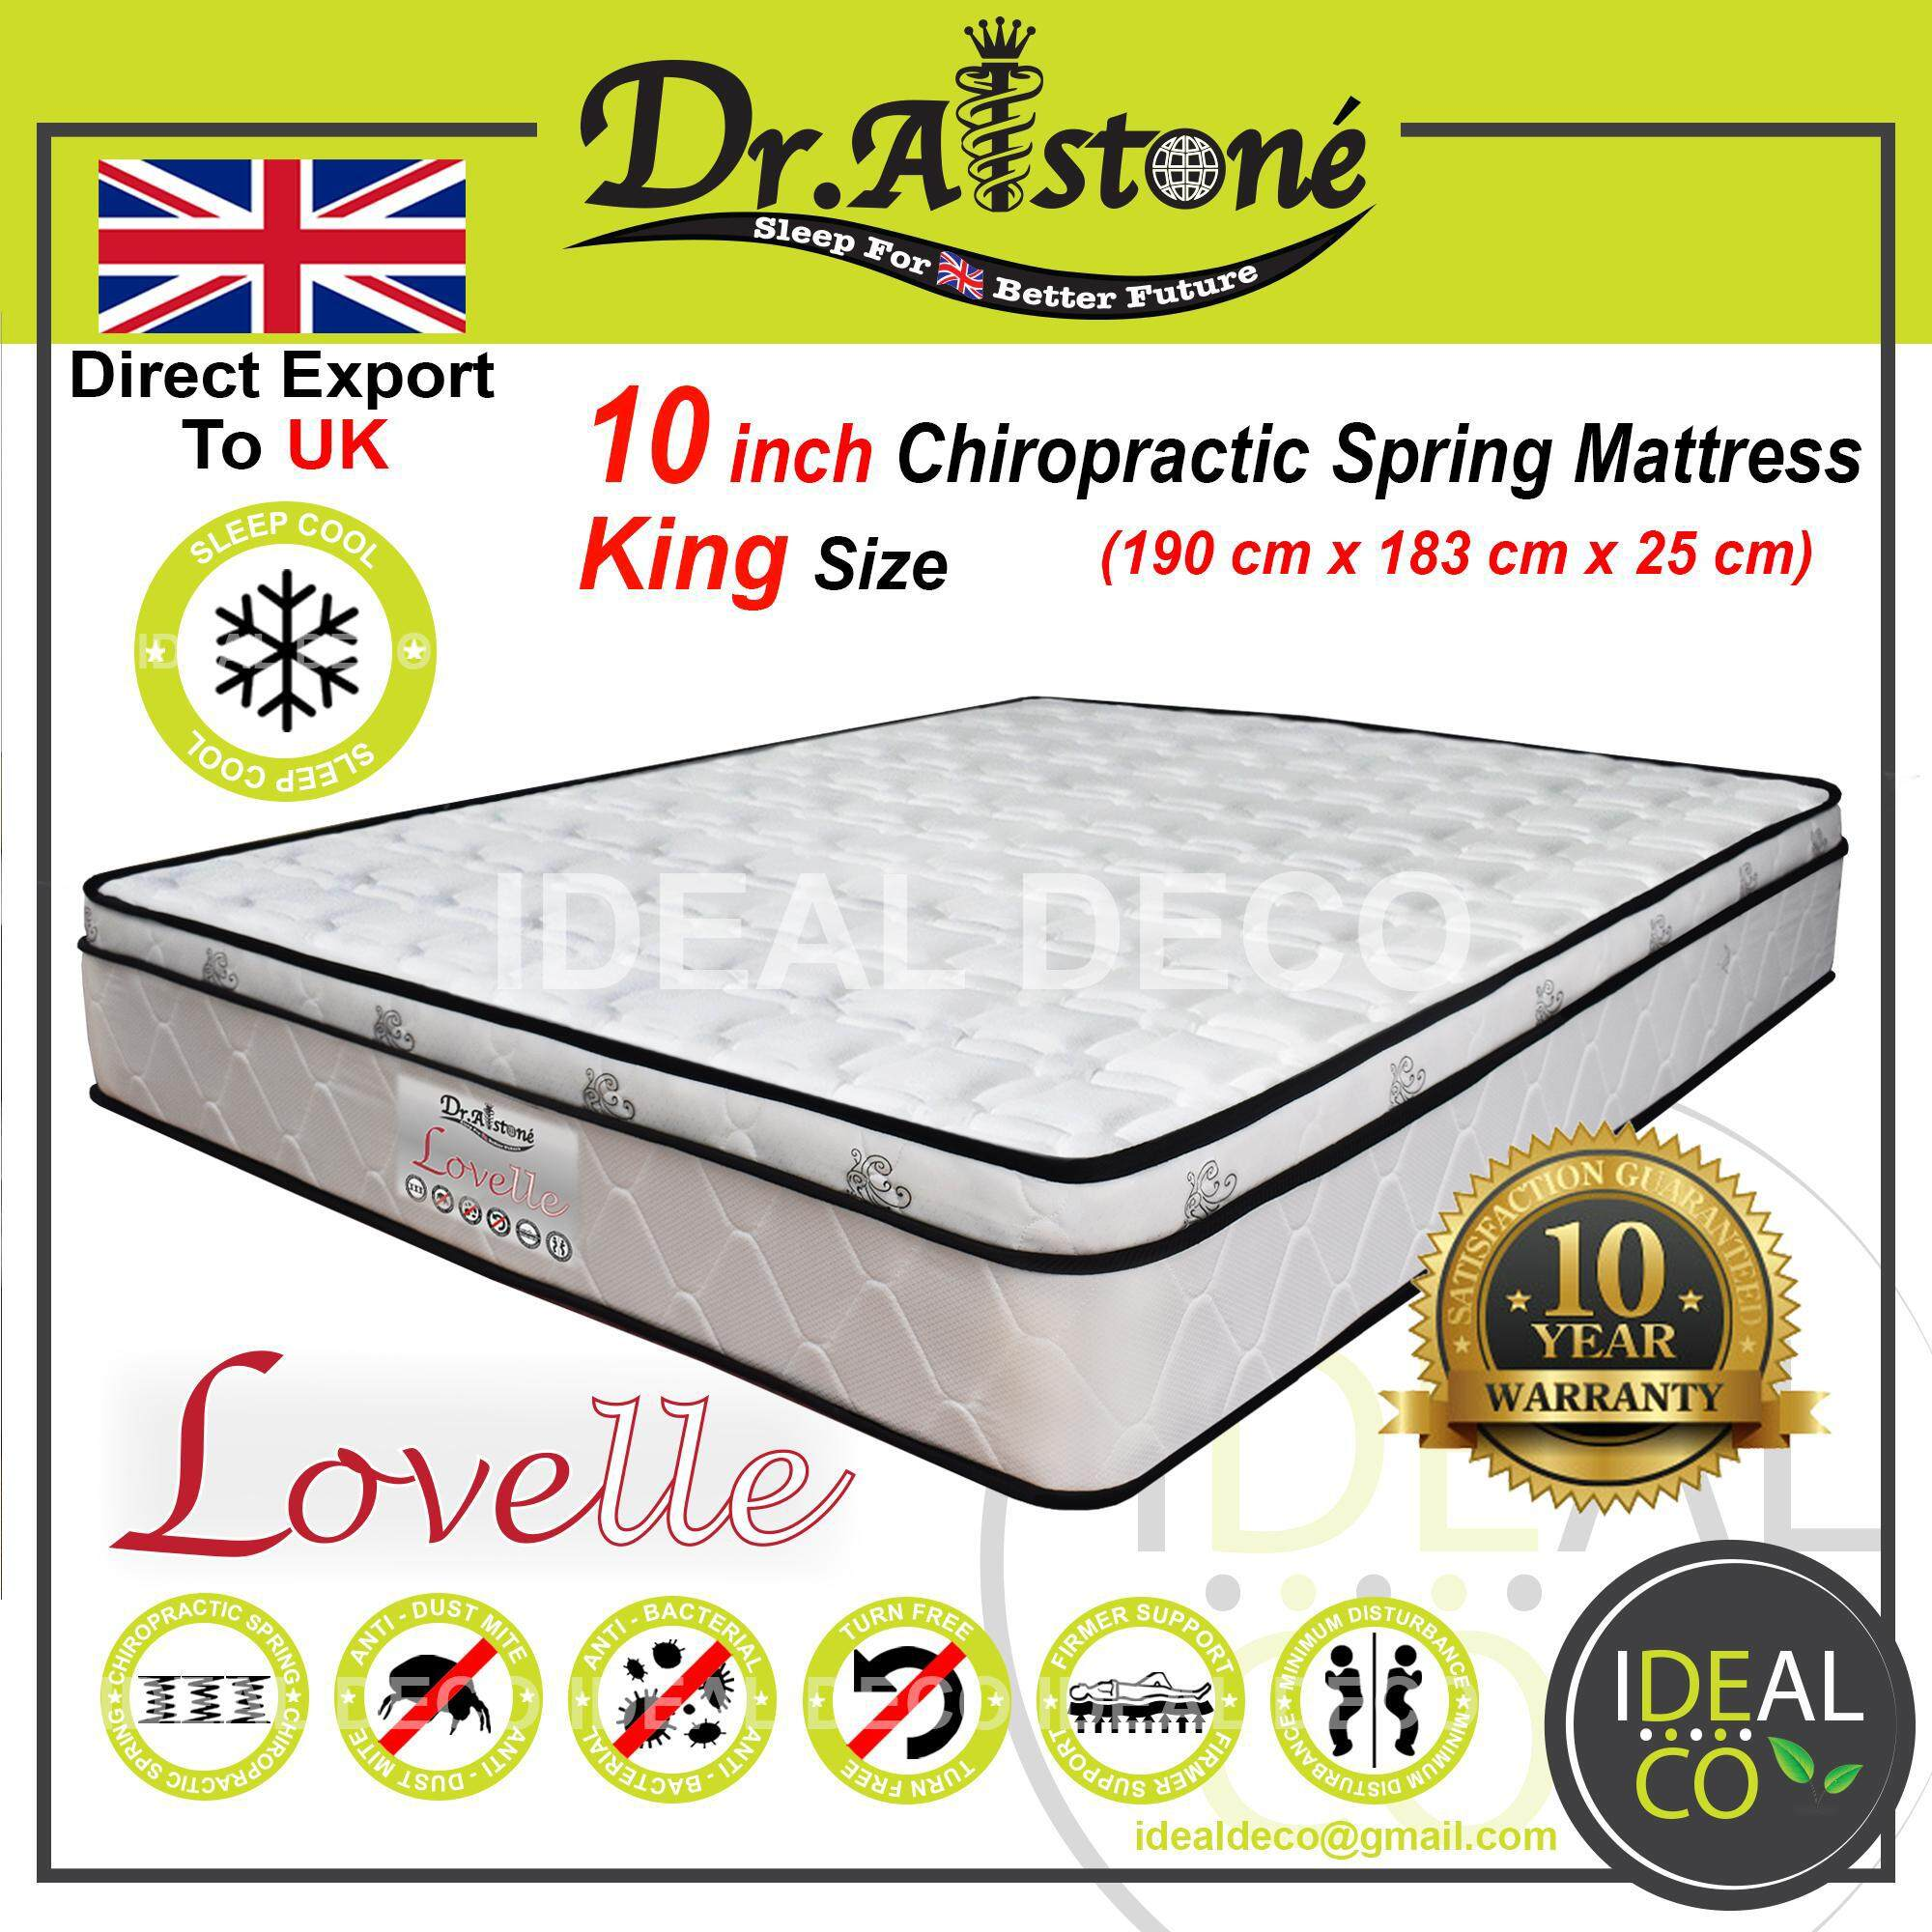 Special Deal Dr Alstone Lovelle Edition Export To Uk King